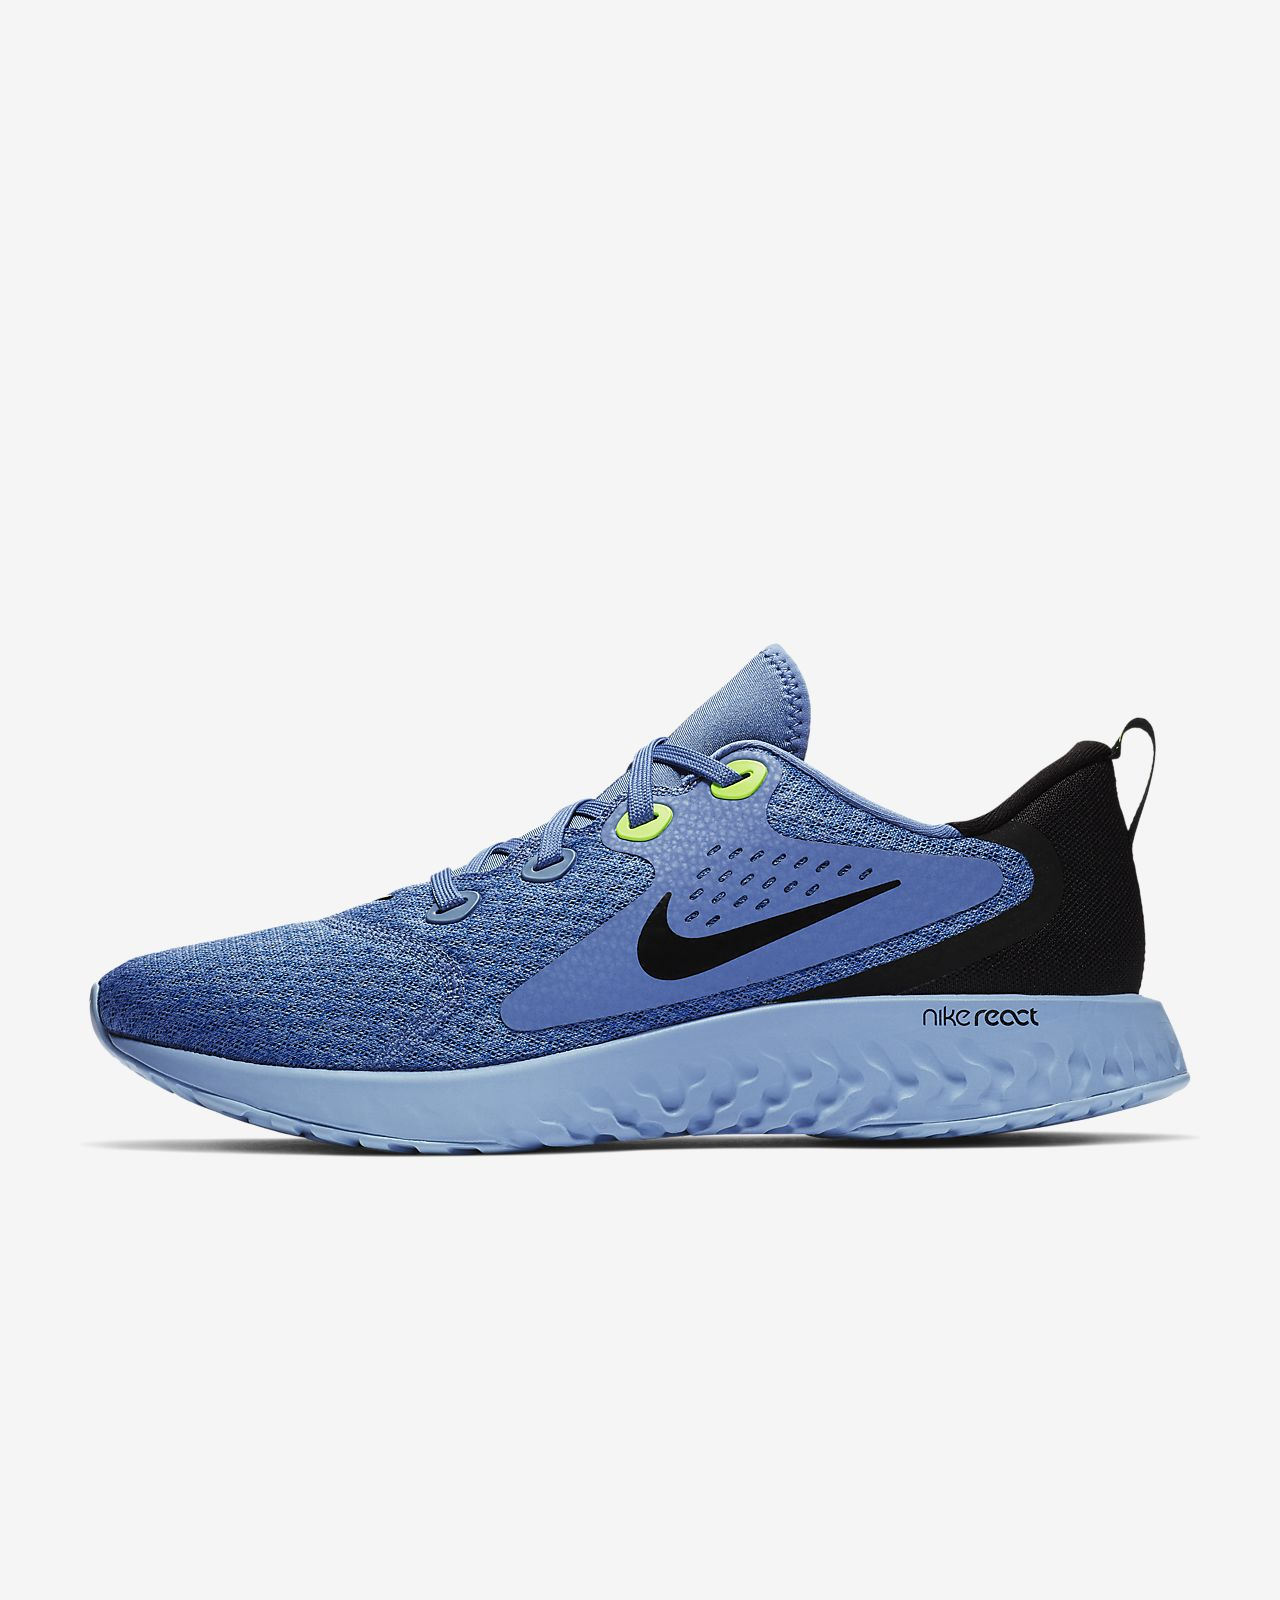 108a23d857d Nike Legend React Men s Running Shoe. Nike.com